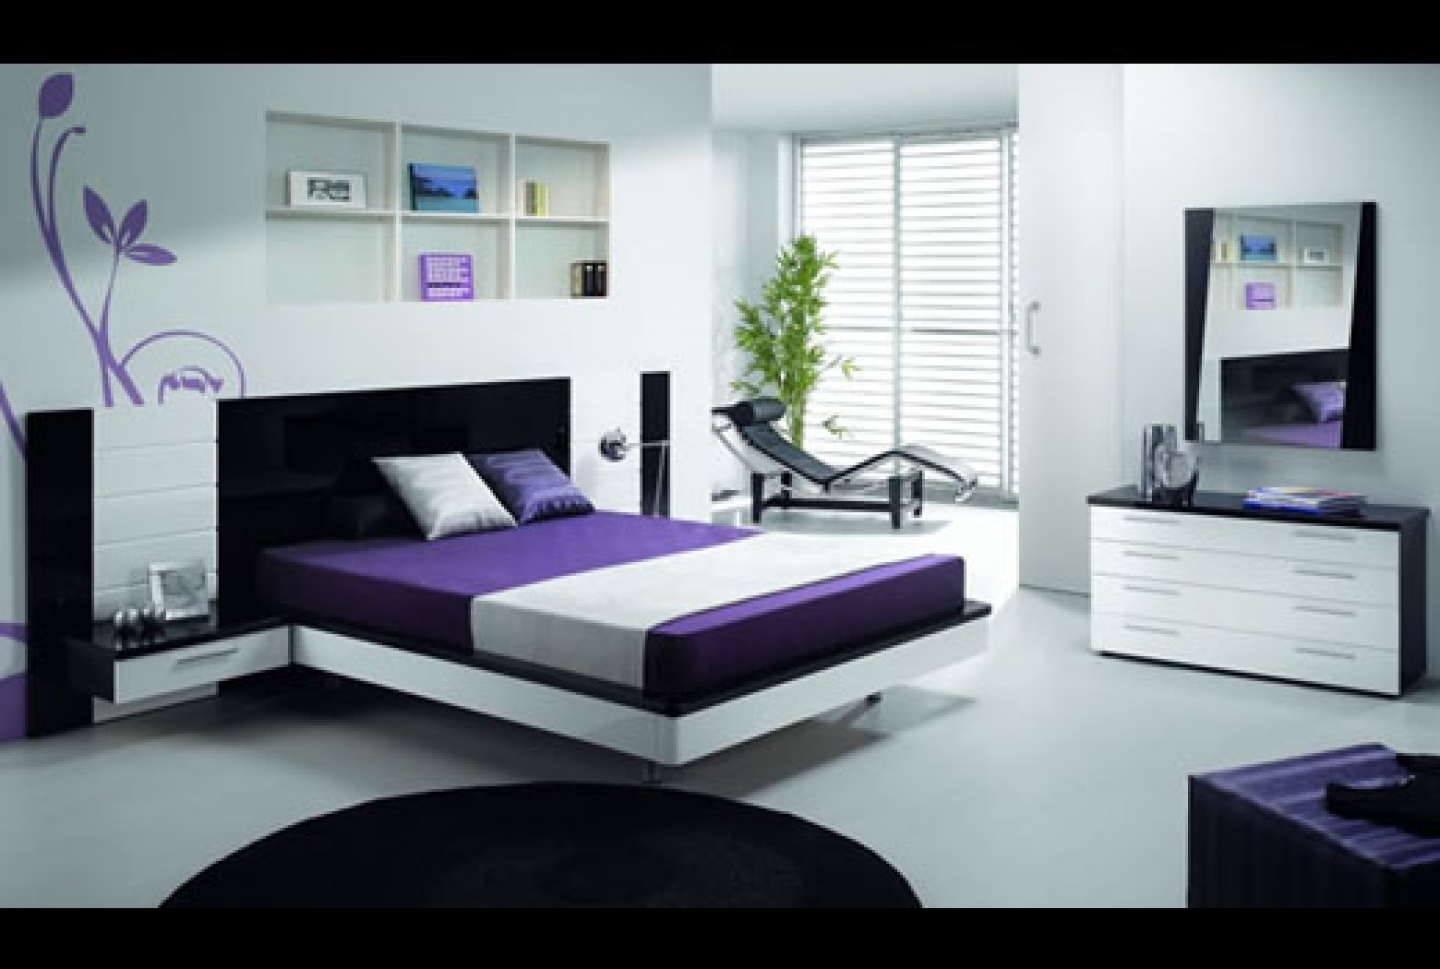 bedroom furniture interior design ideas photo - 9